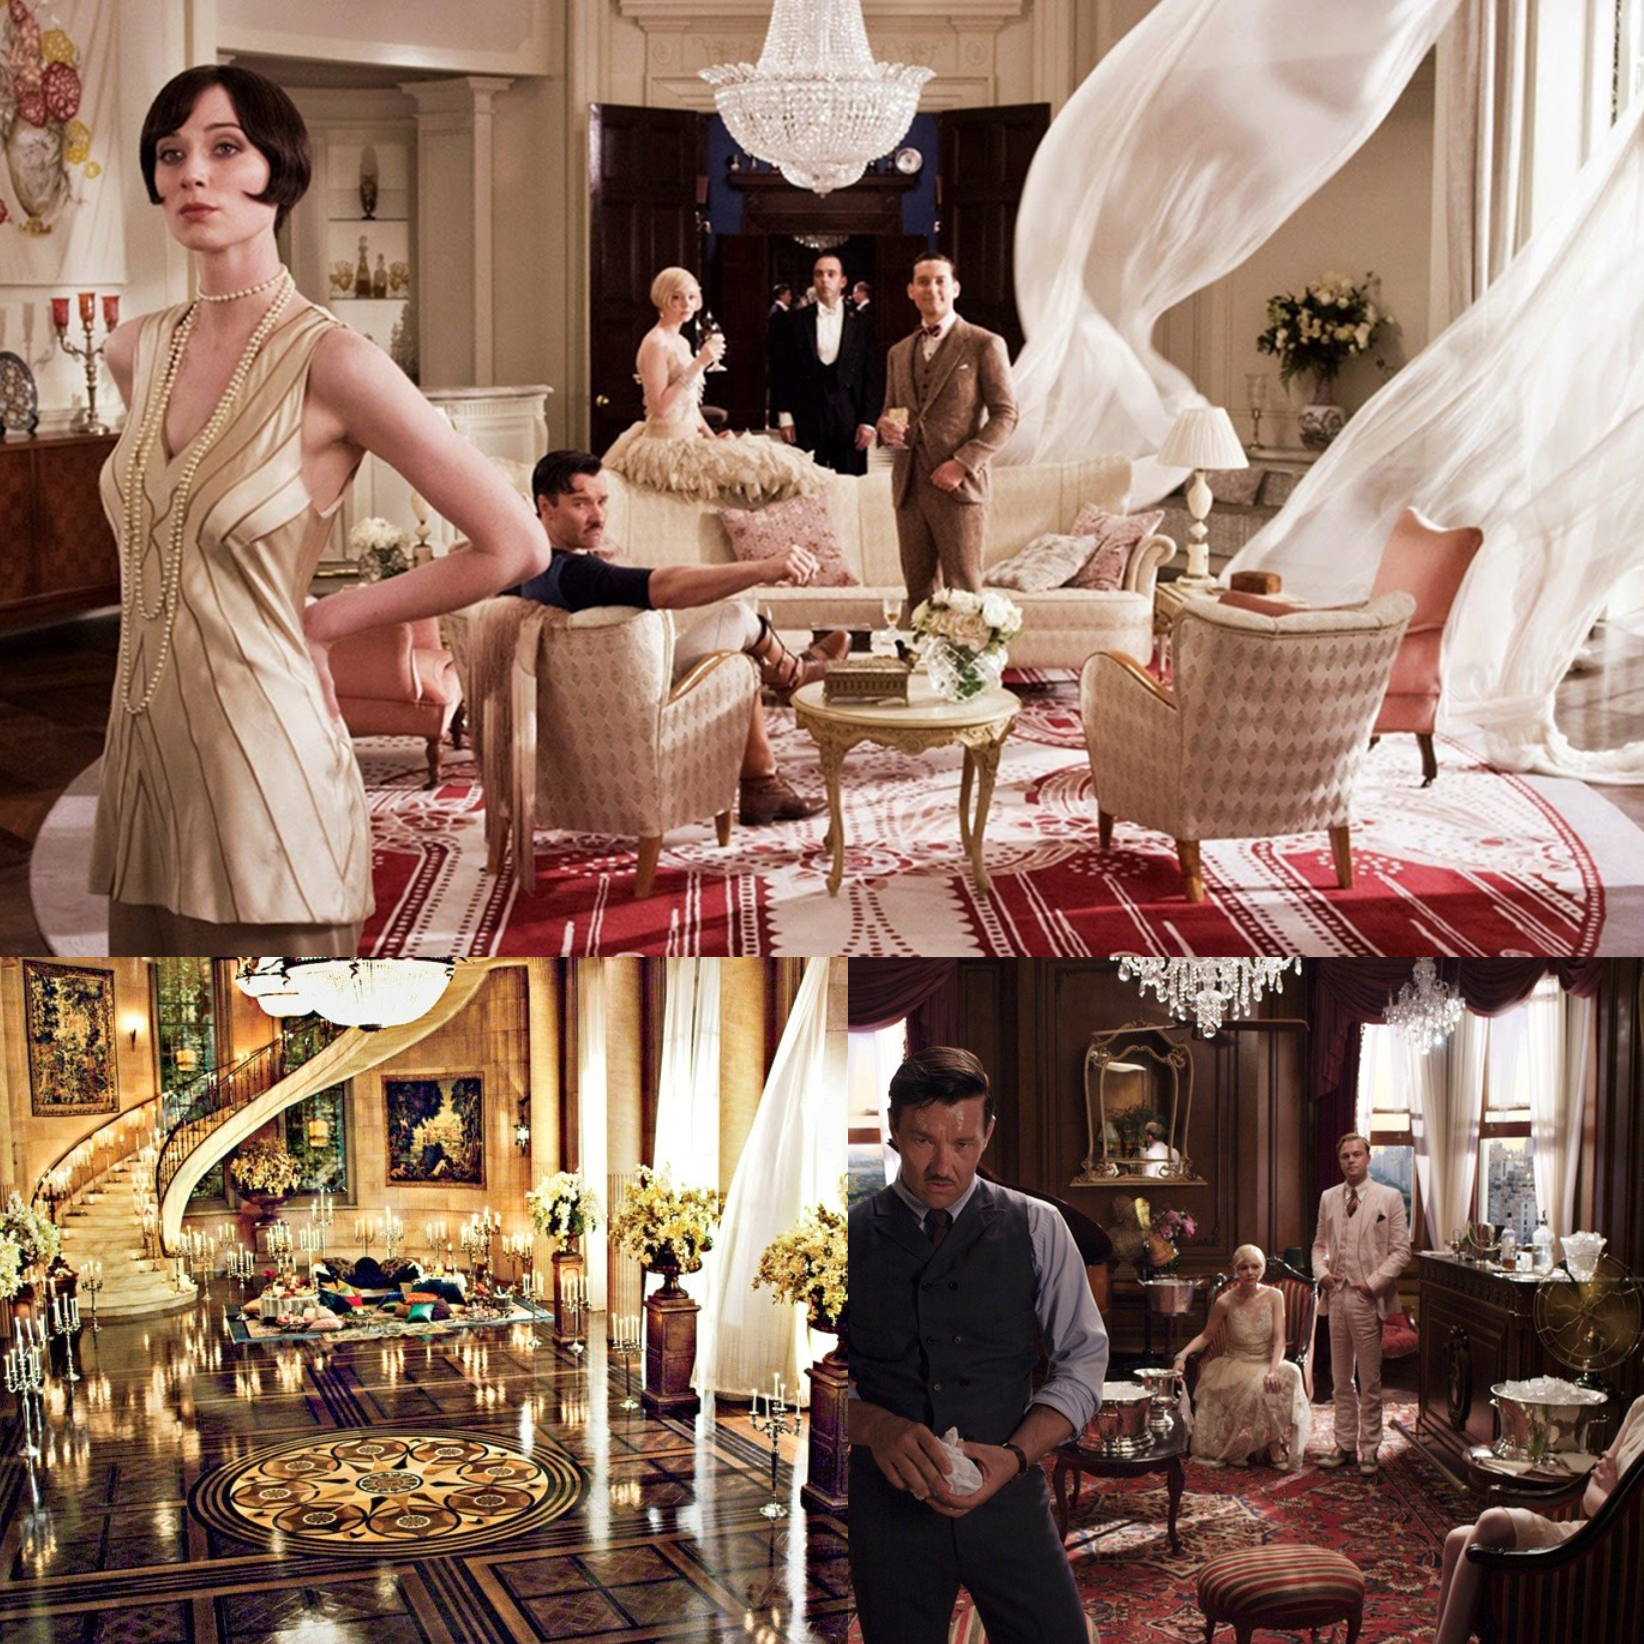 The Great Gatsby interior collage for film home decor ideas